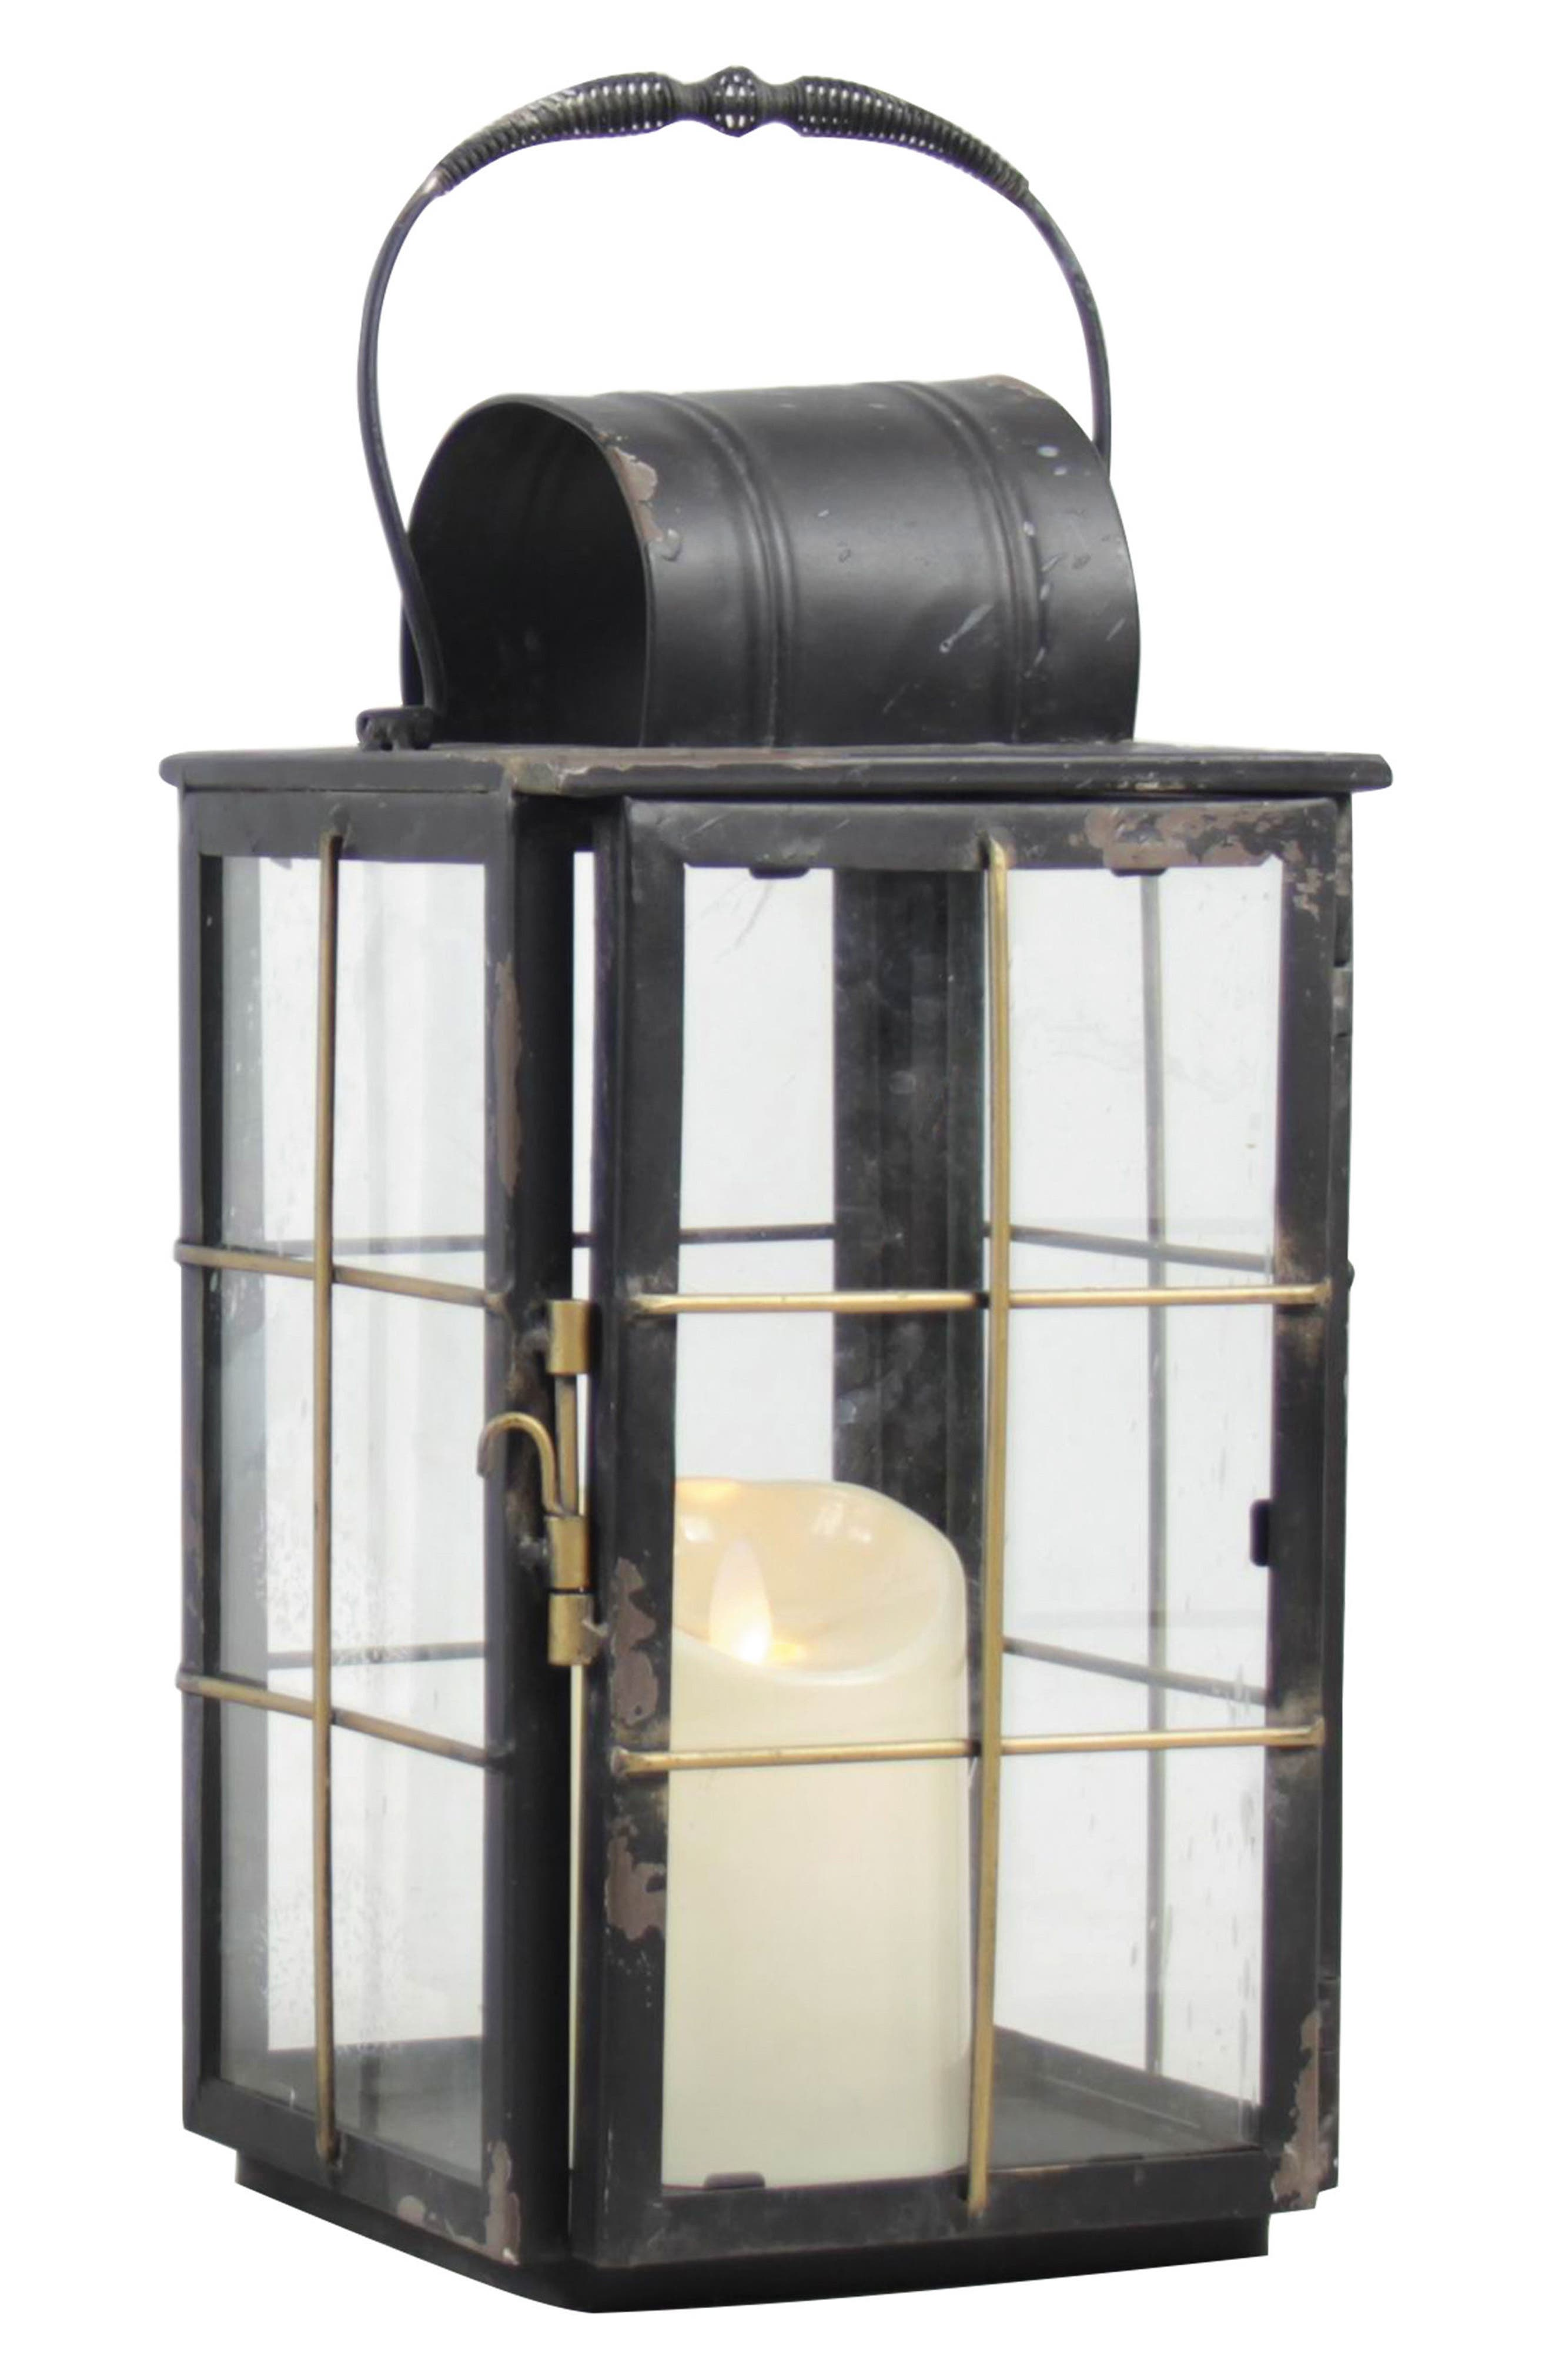 Alternate Image 1 Selected - Foreside Small Holiday Cottage Metal Lantern